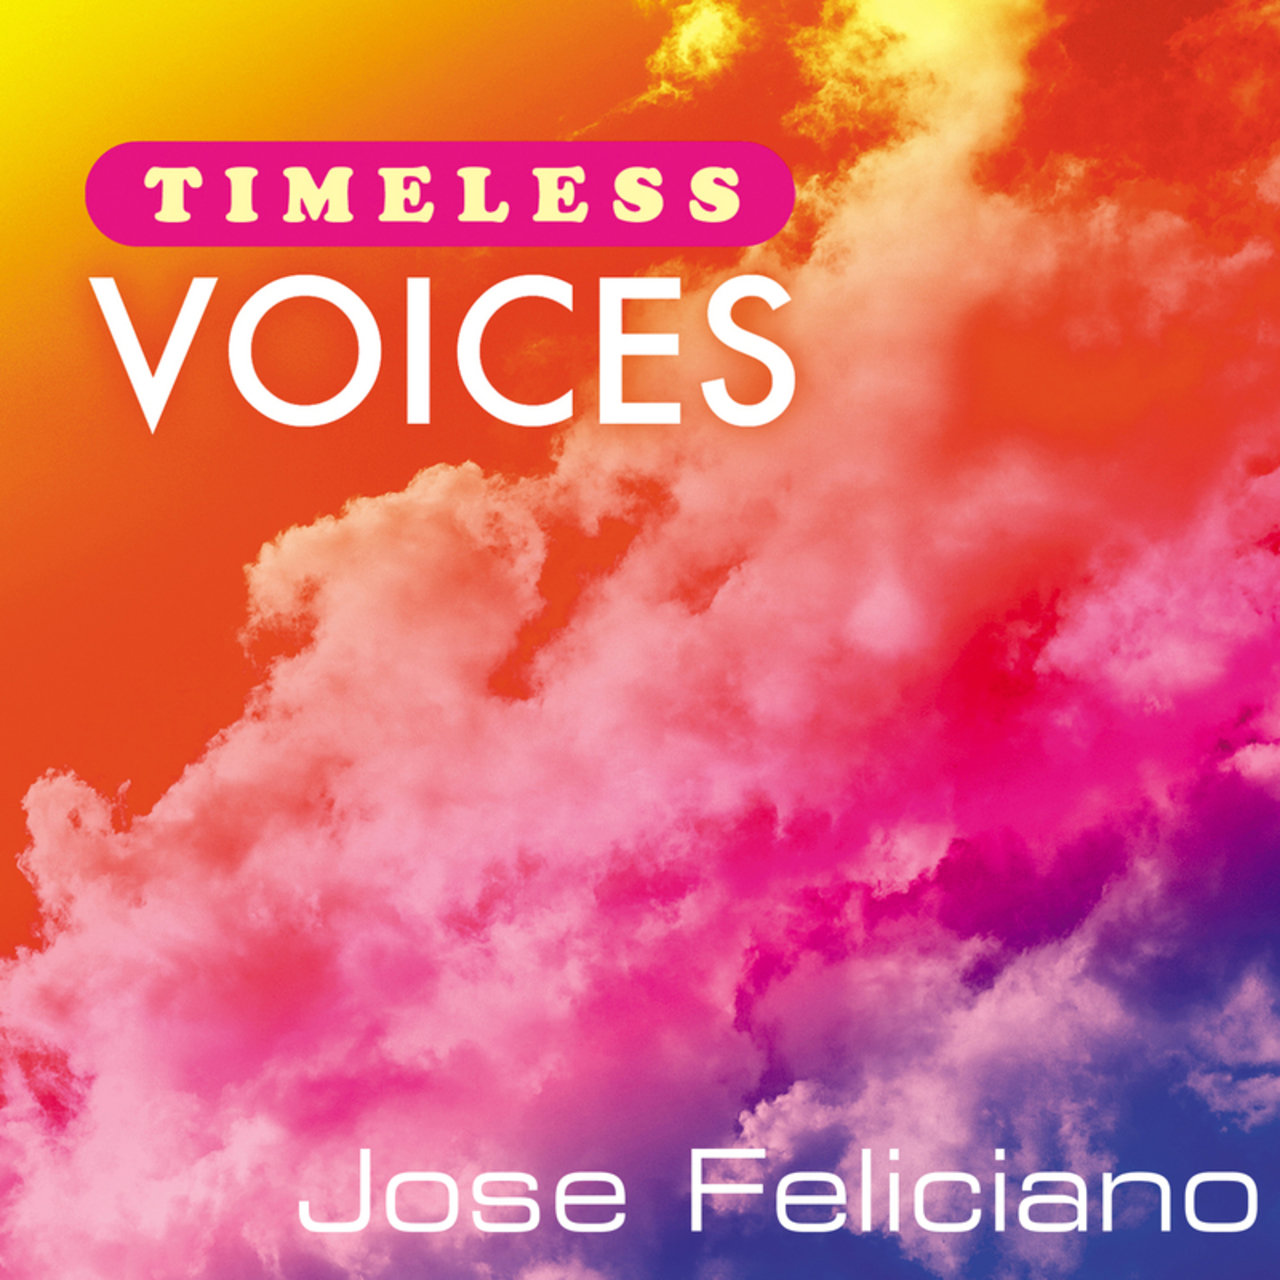 Timeless Voices: Jose Feliciano